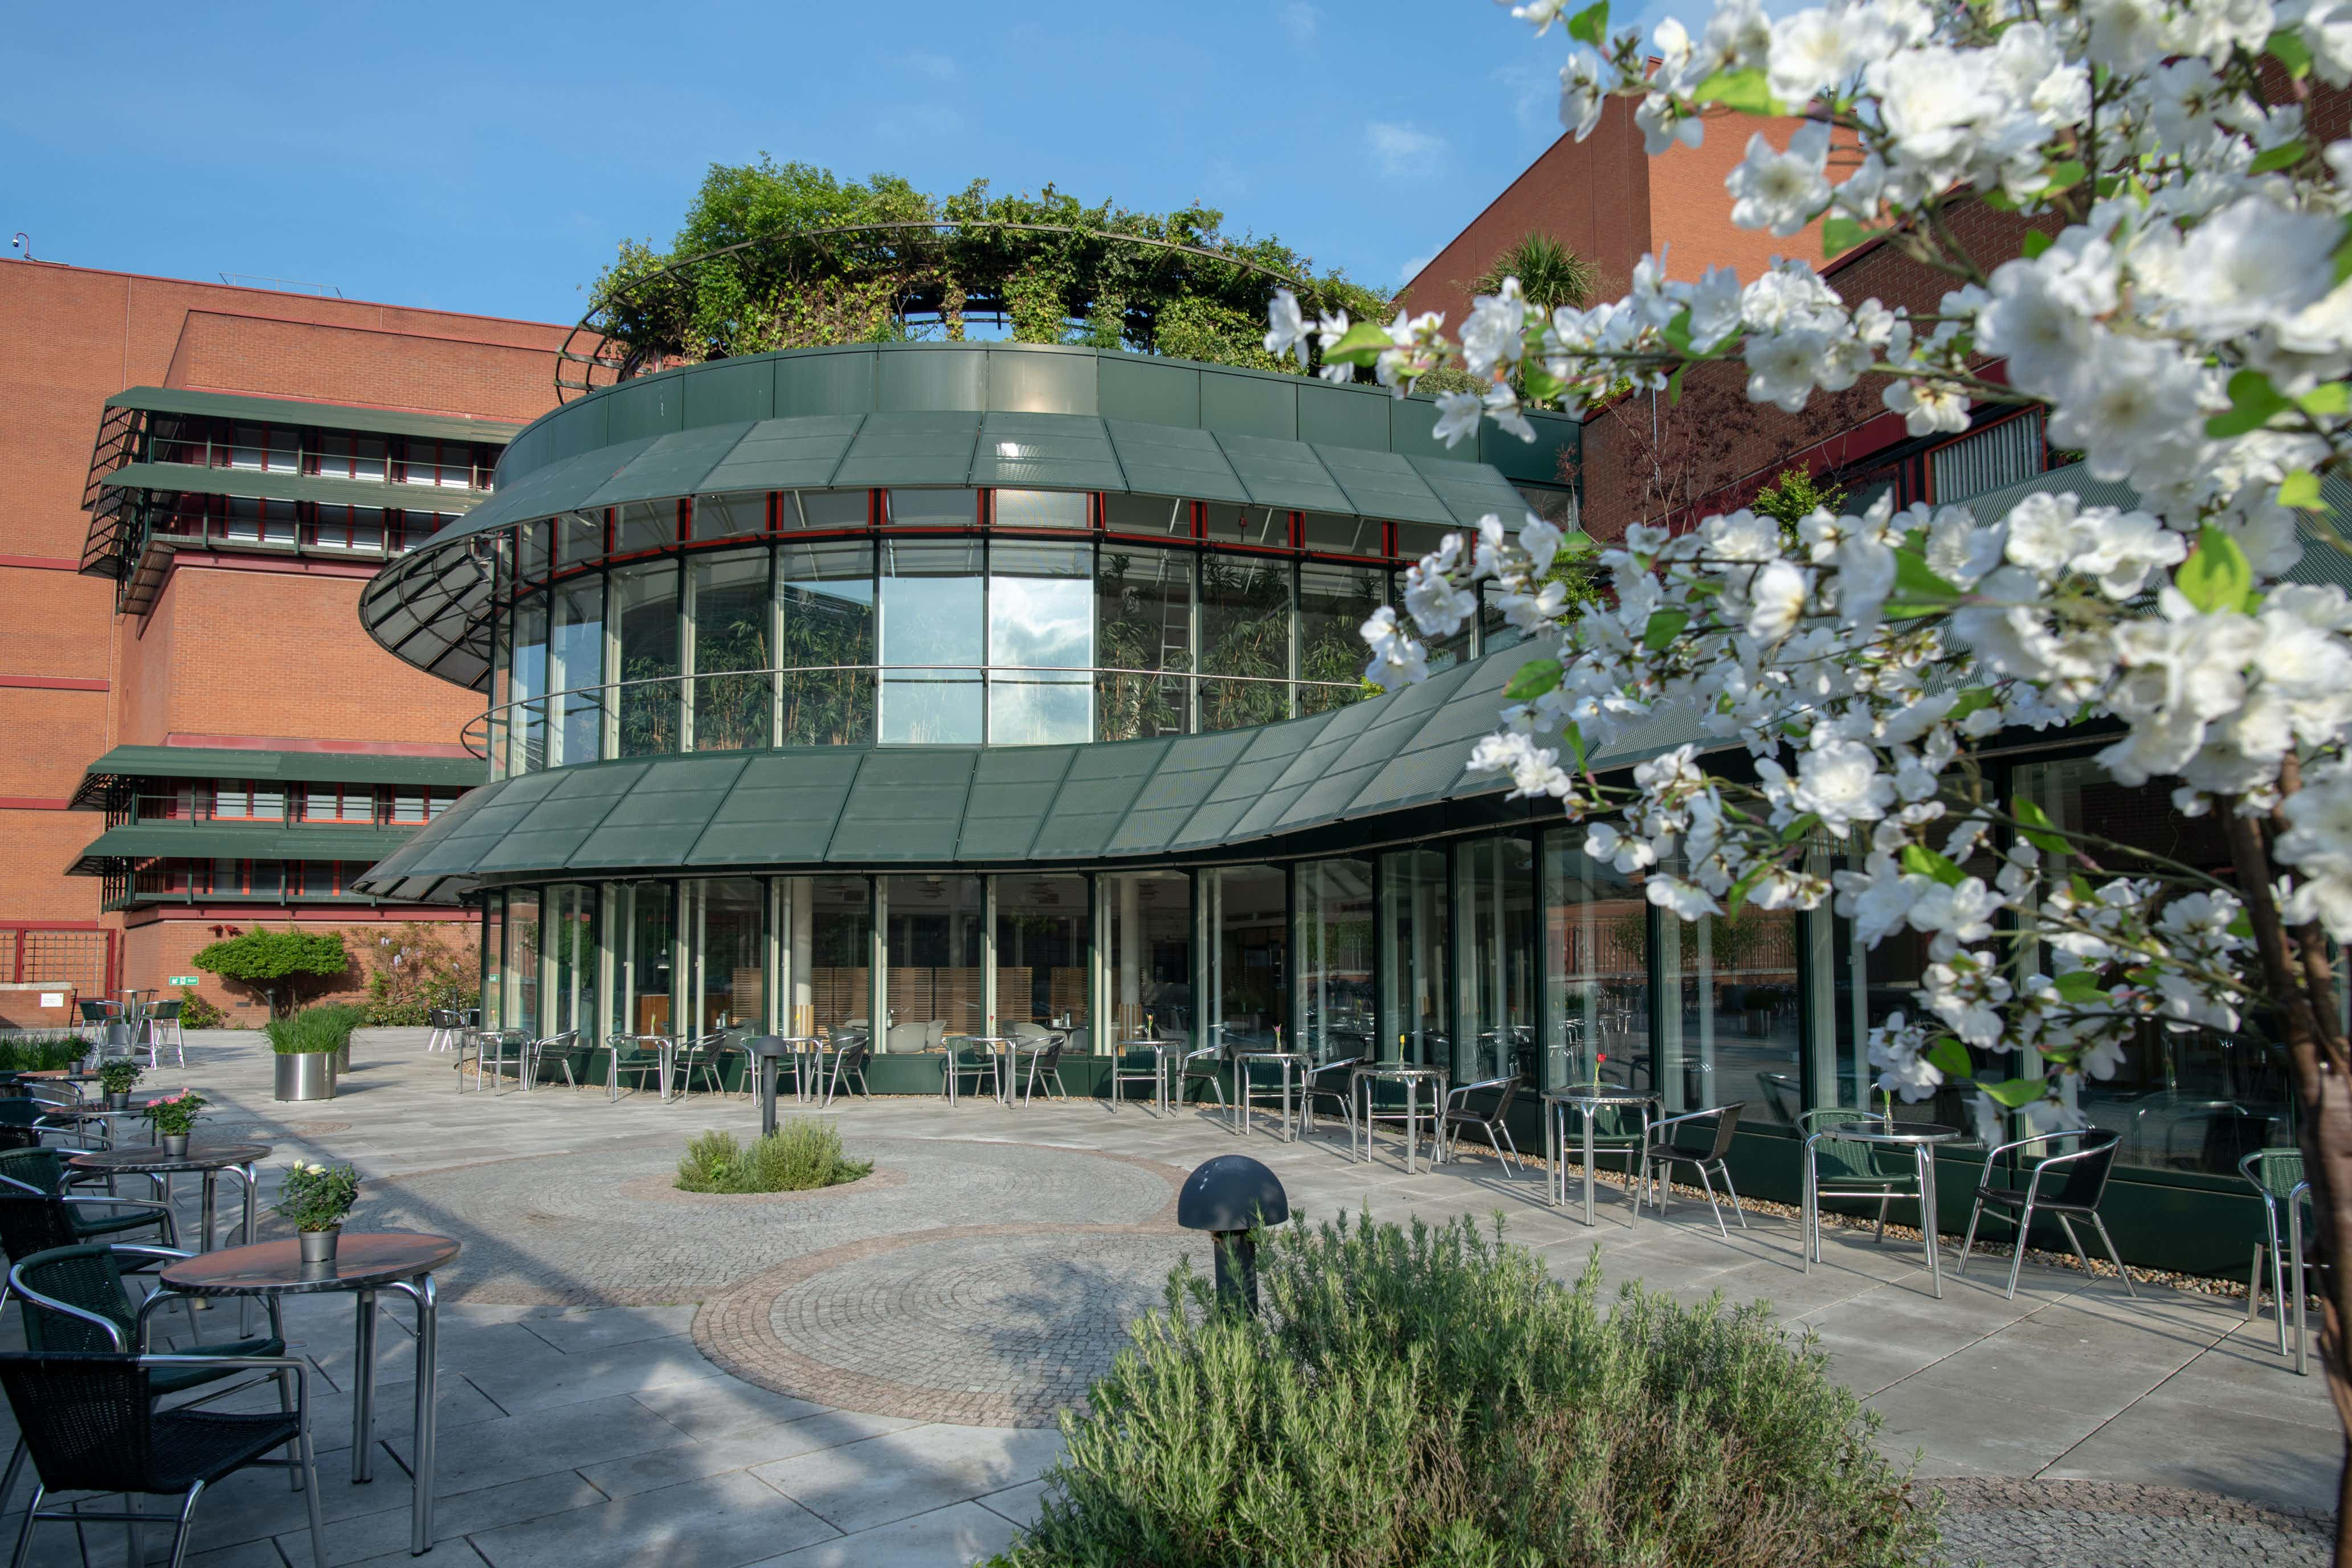 Terrace Restaurant and Outdoor Terrace, British Library